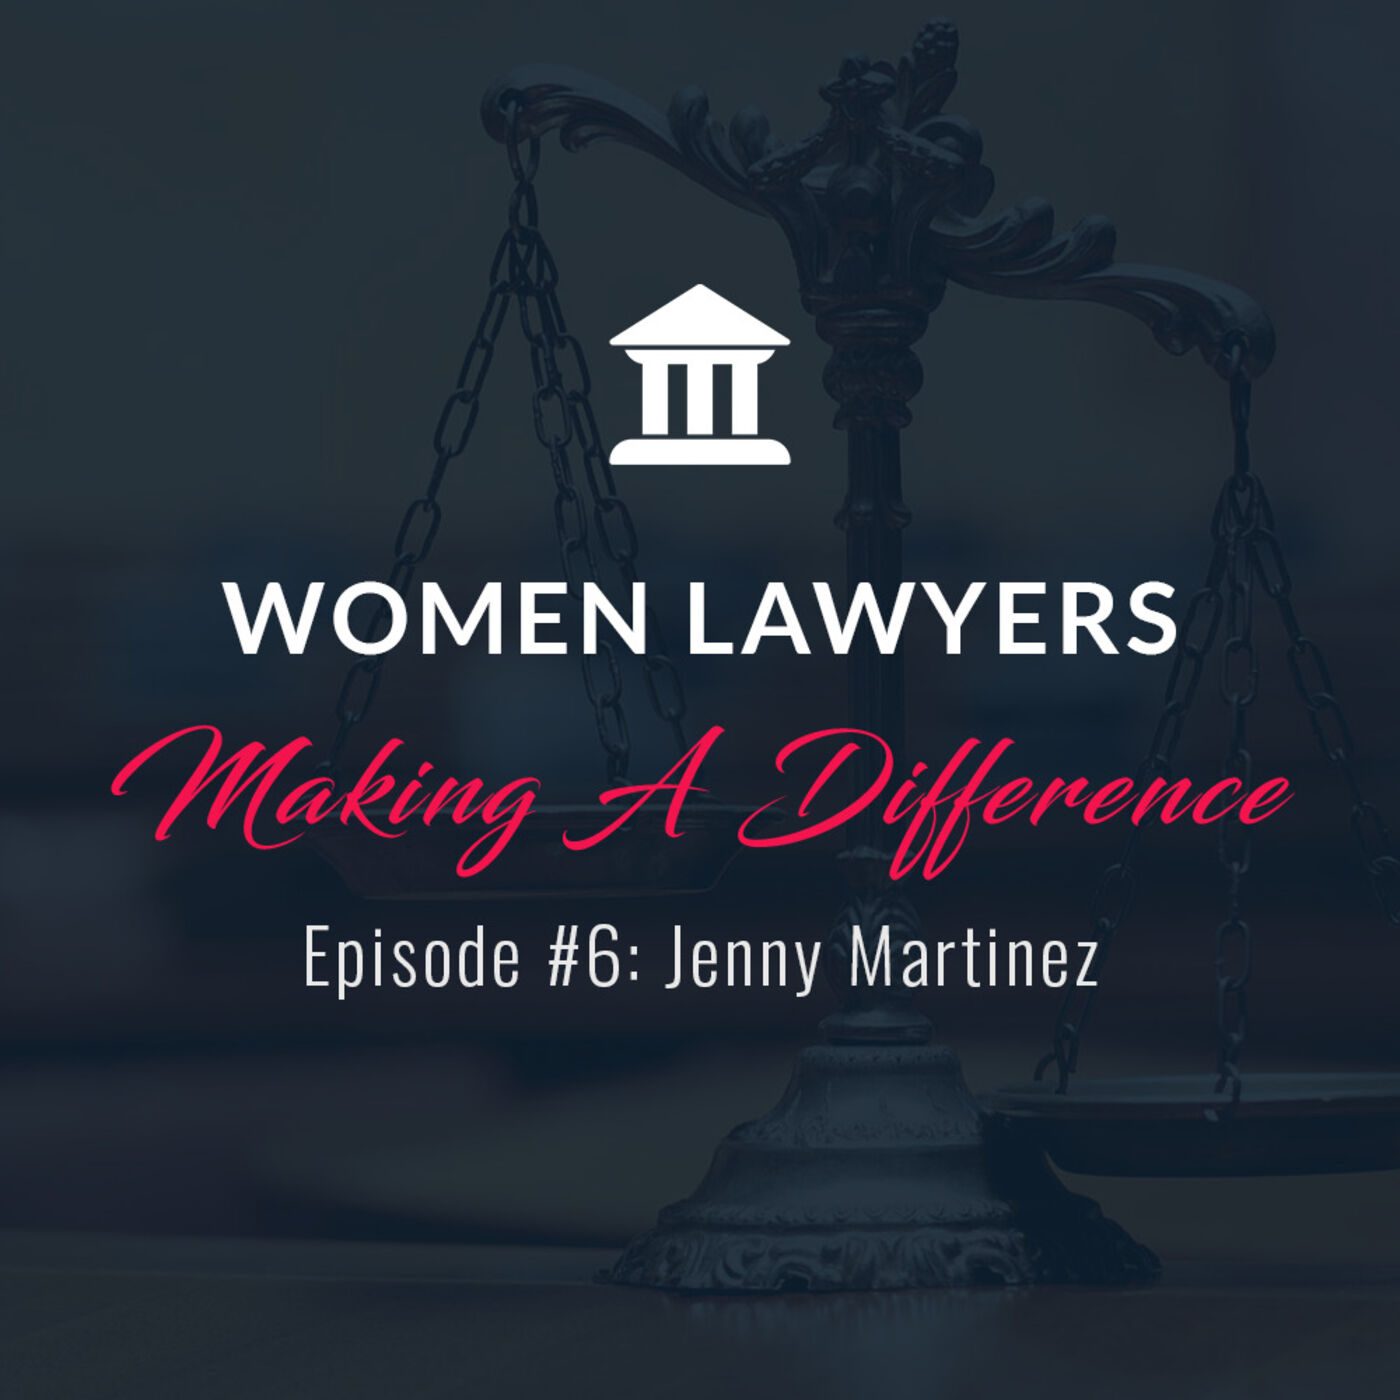 Women Lawyers Making A Difference: Interview with Jenny Martinez